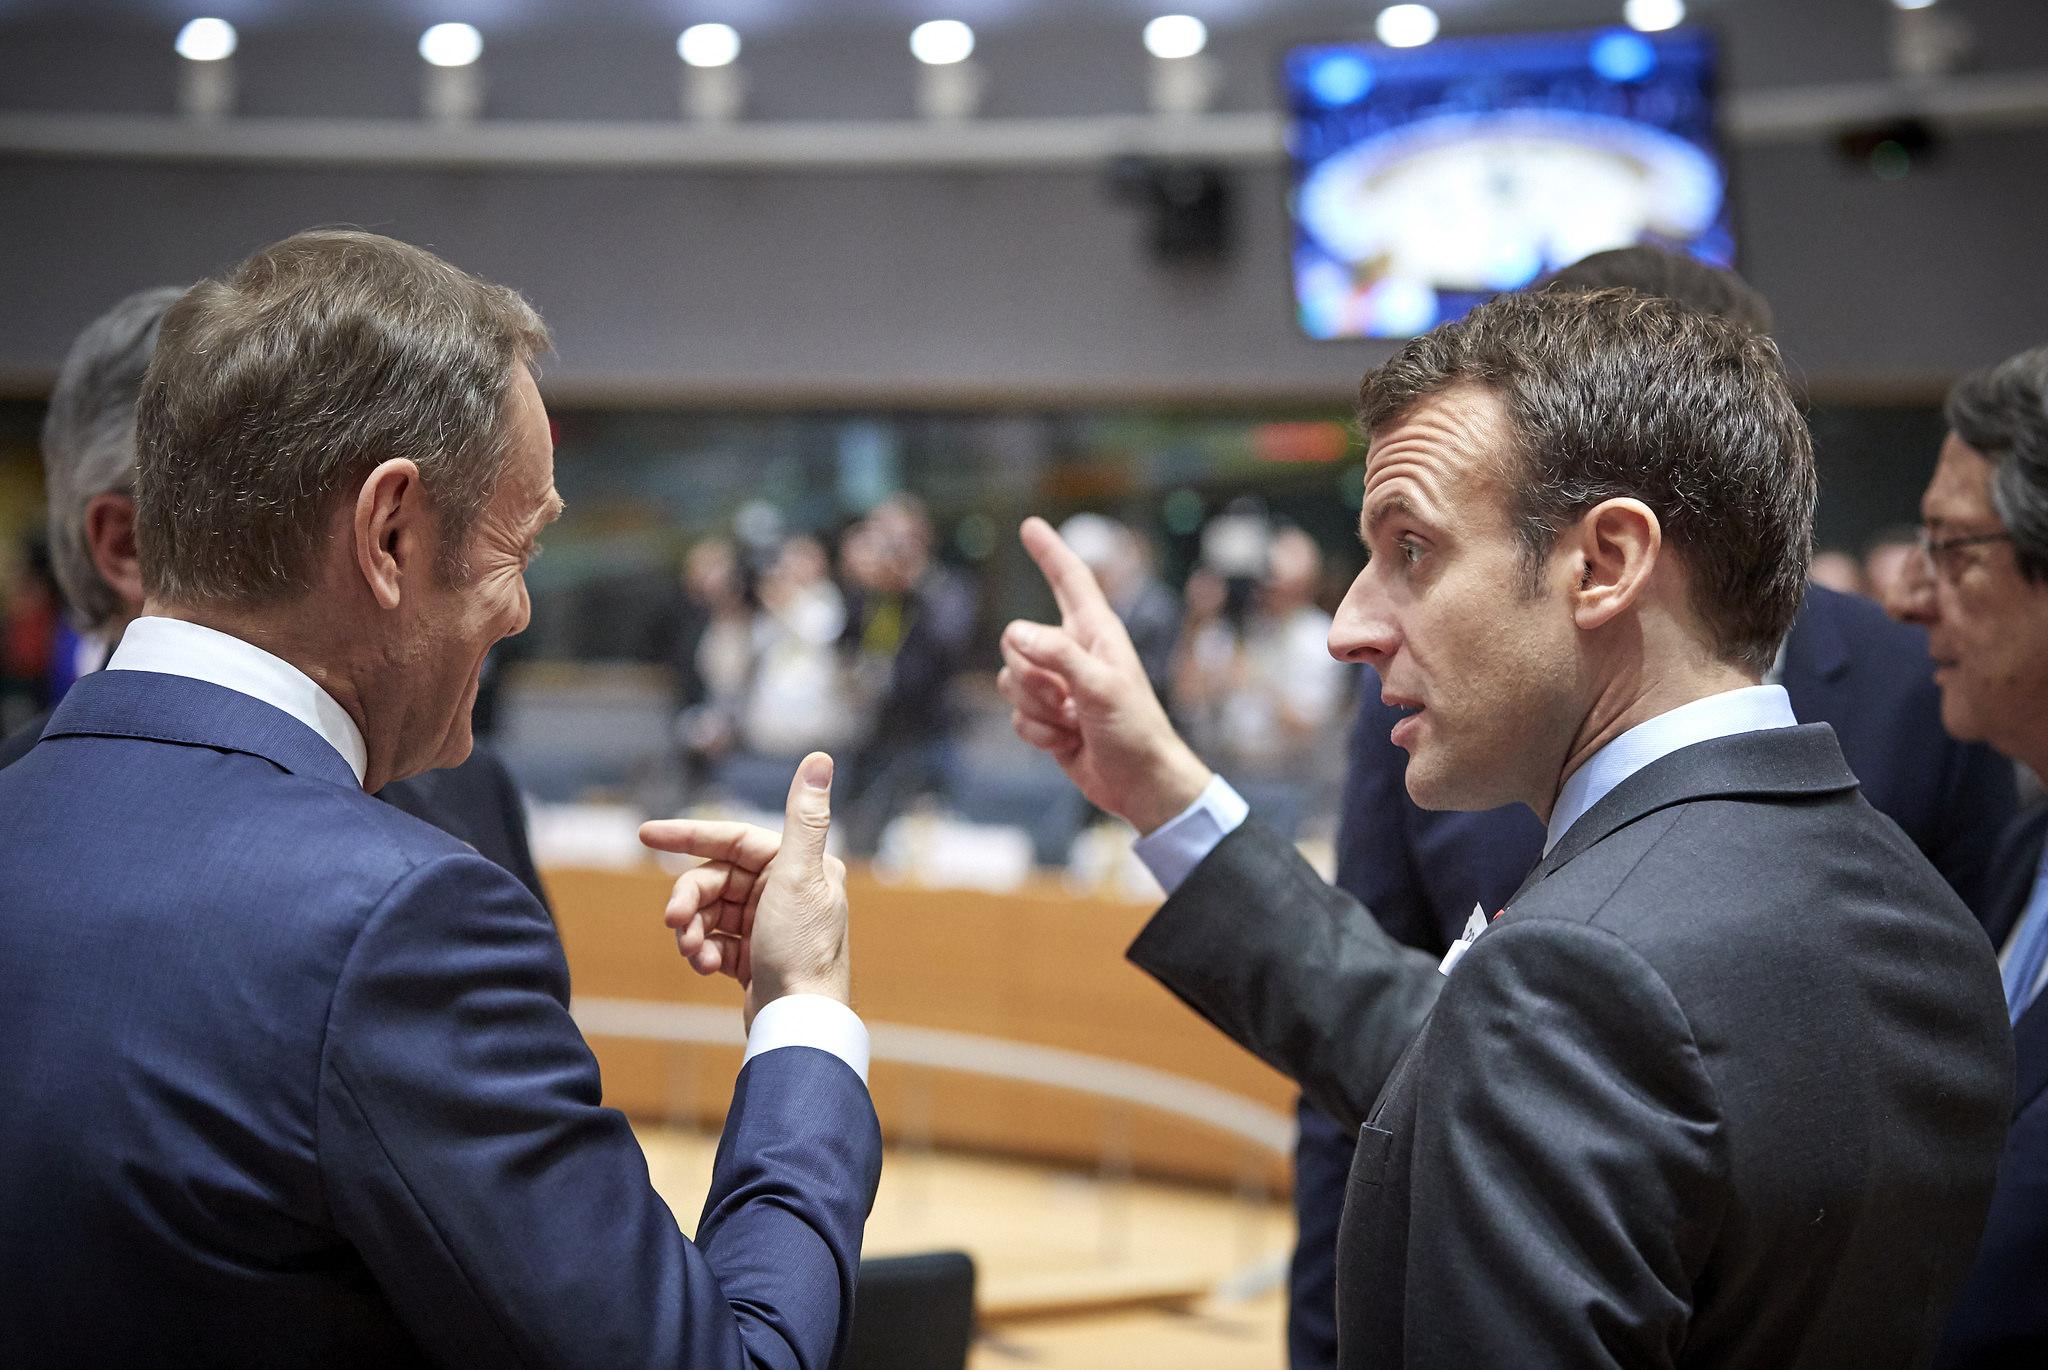 President Tusk at the European Council meeting - European Council President